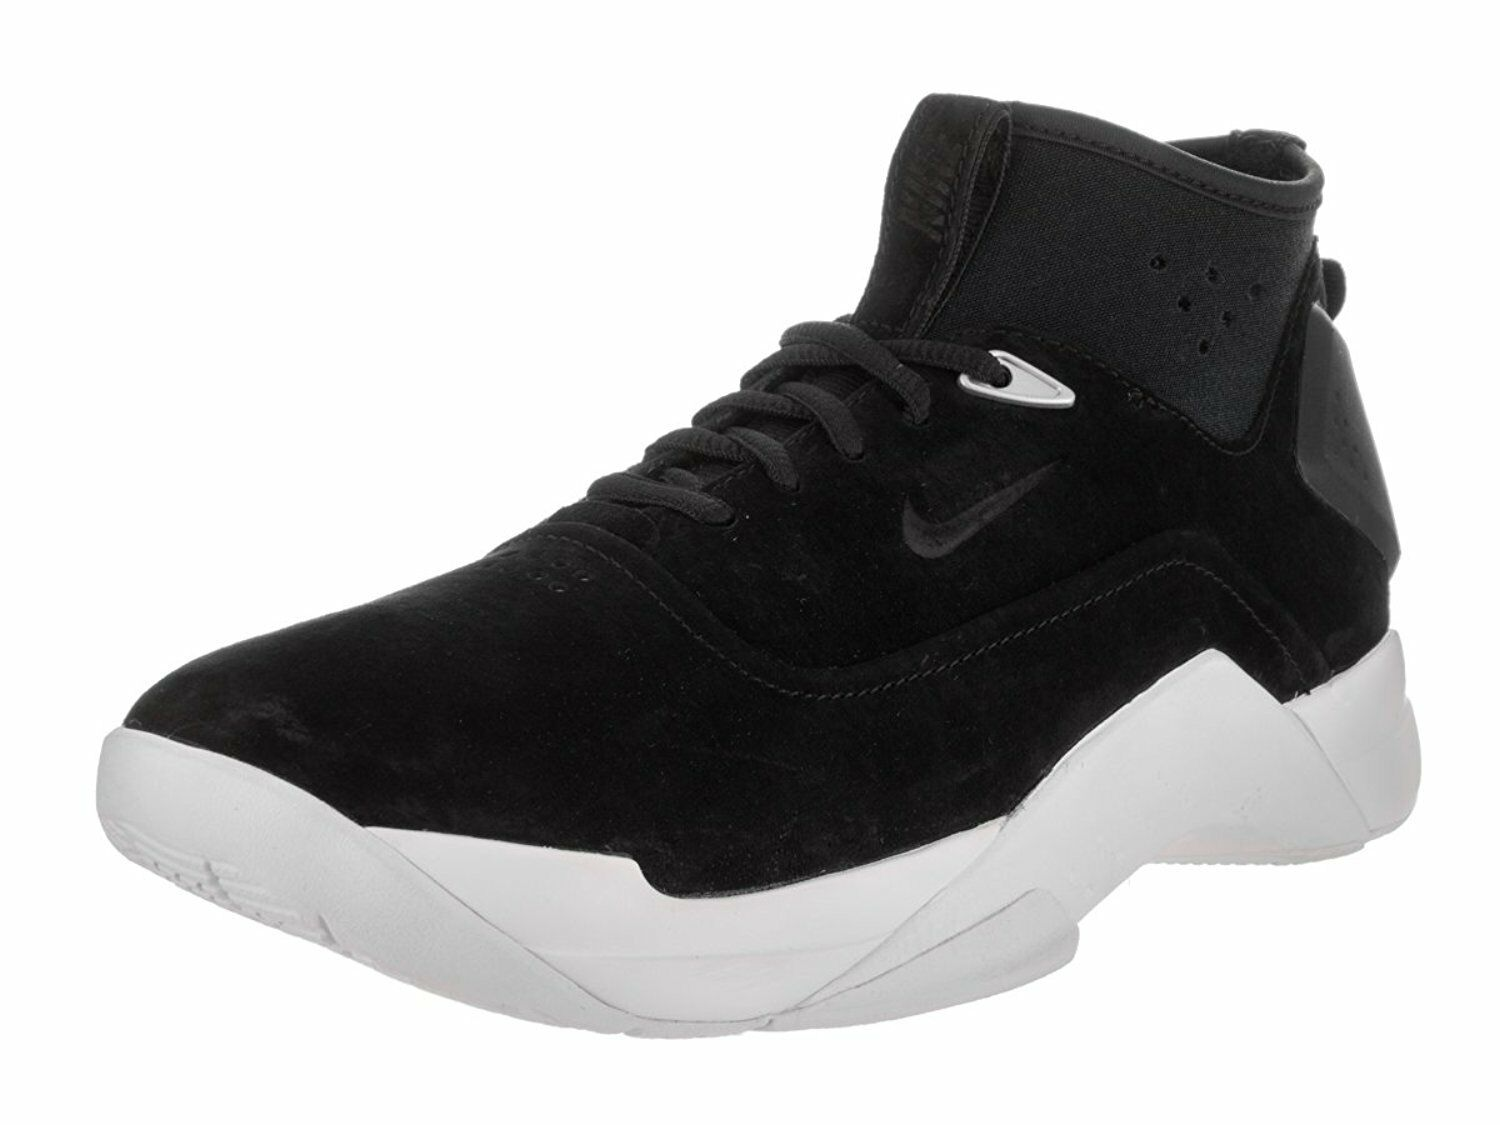 NIKE Men's Hyperdunk Low Lux Basketball Shoe BLACK WHITE 864022 001 7 9 9.5 10